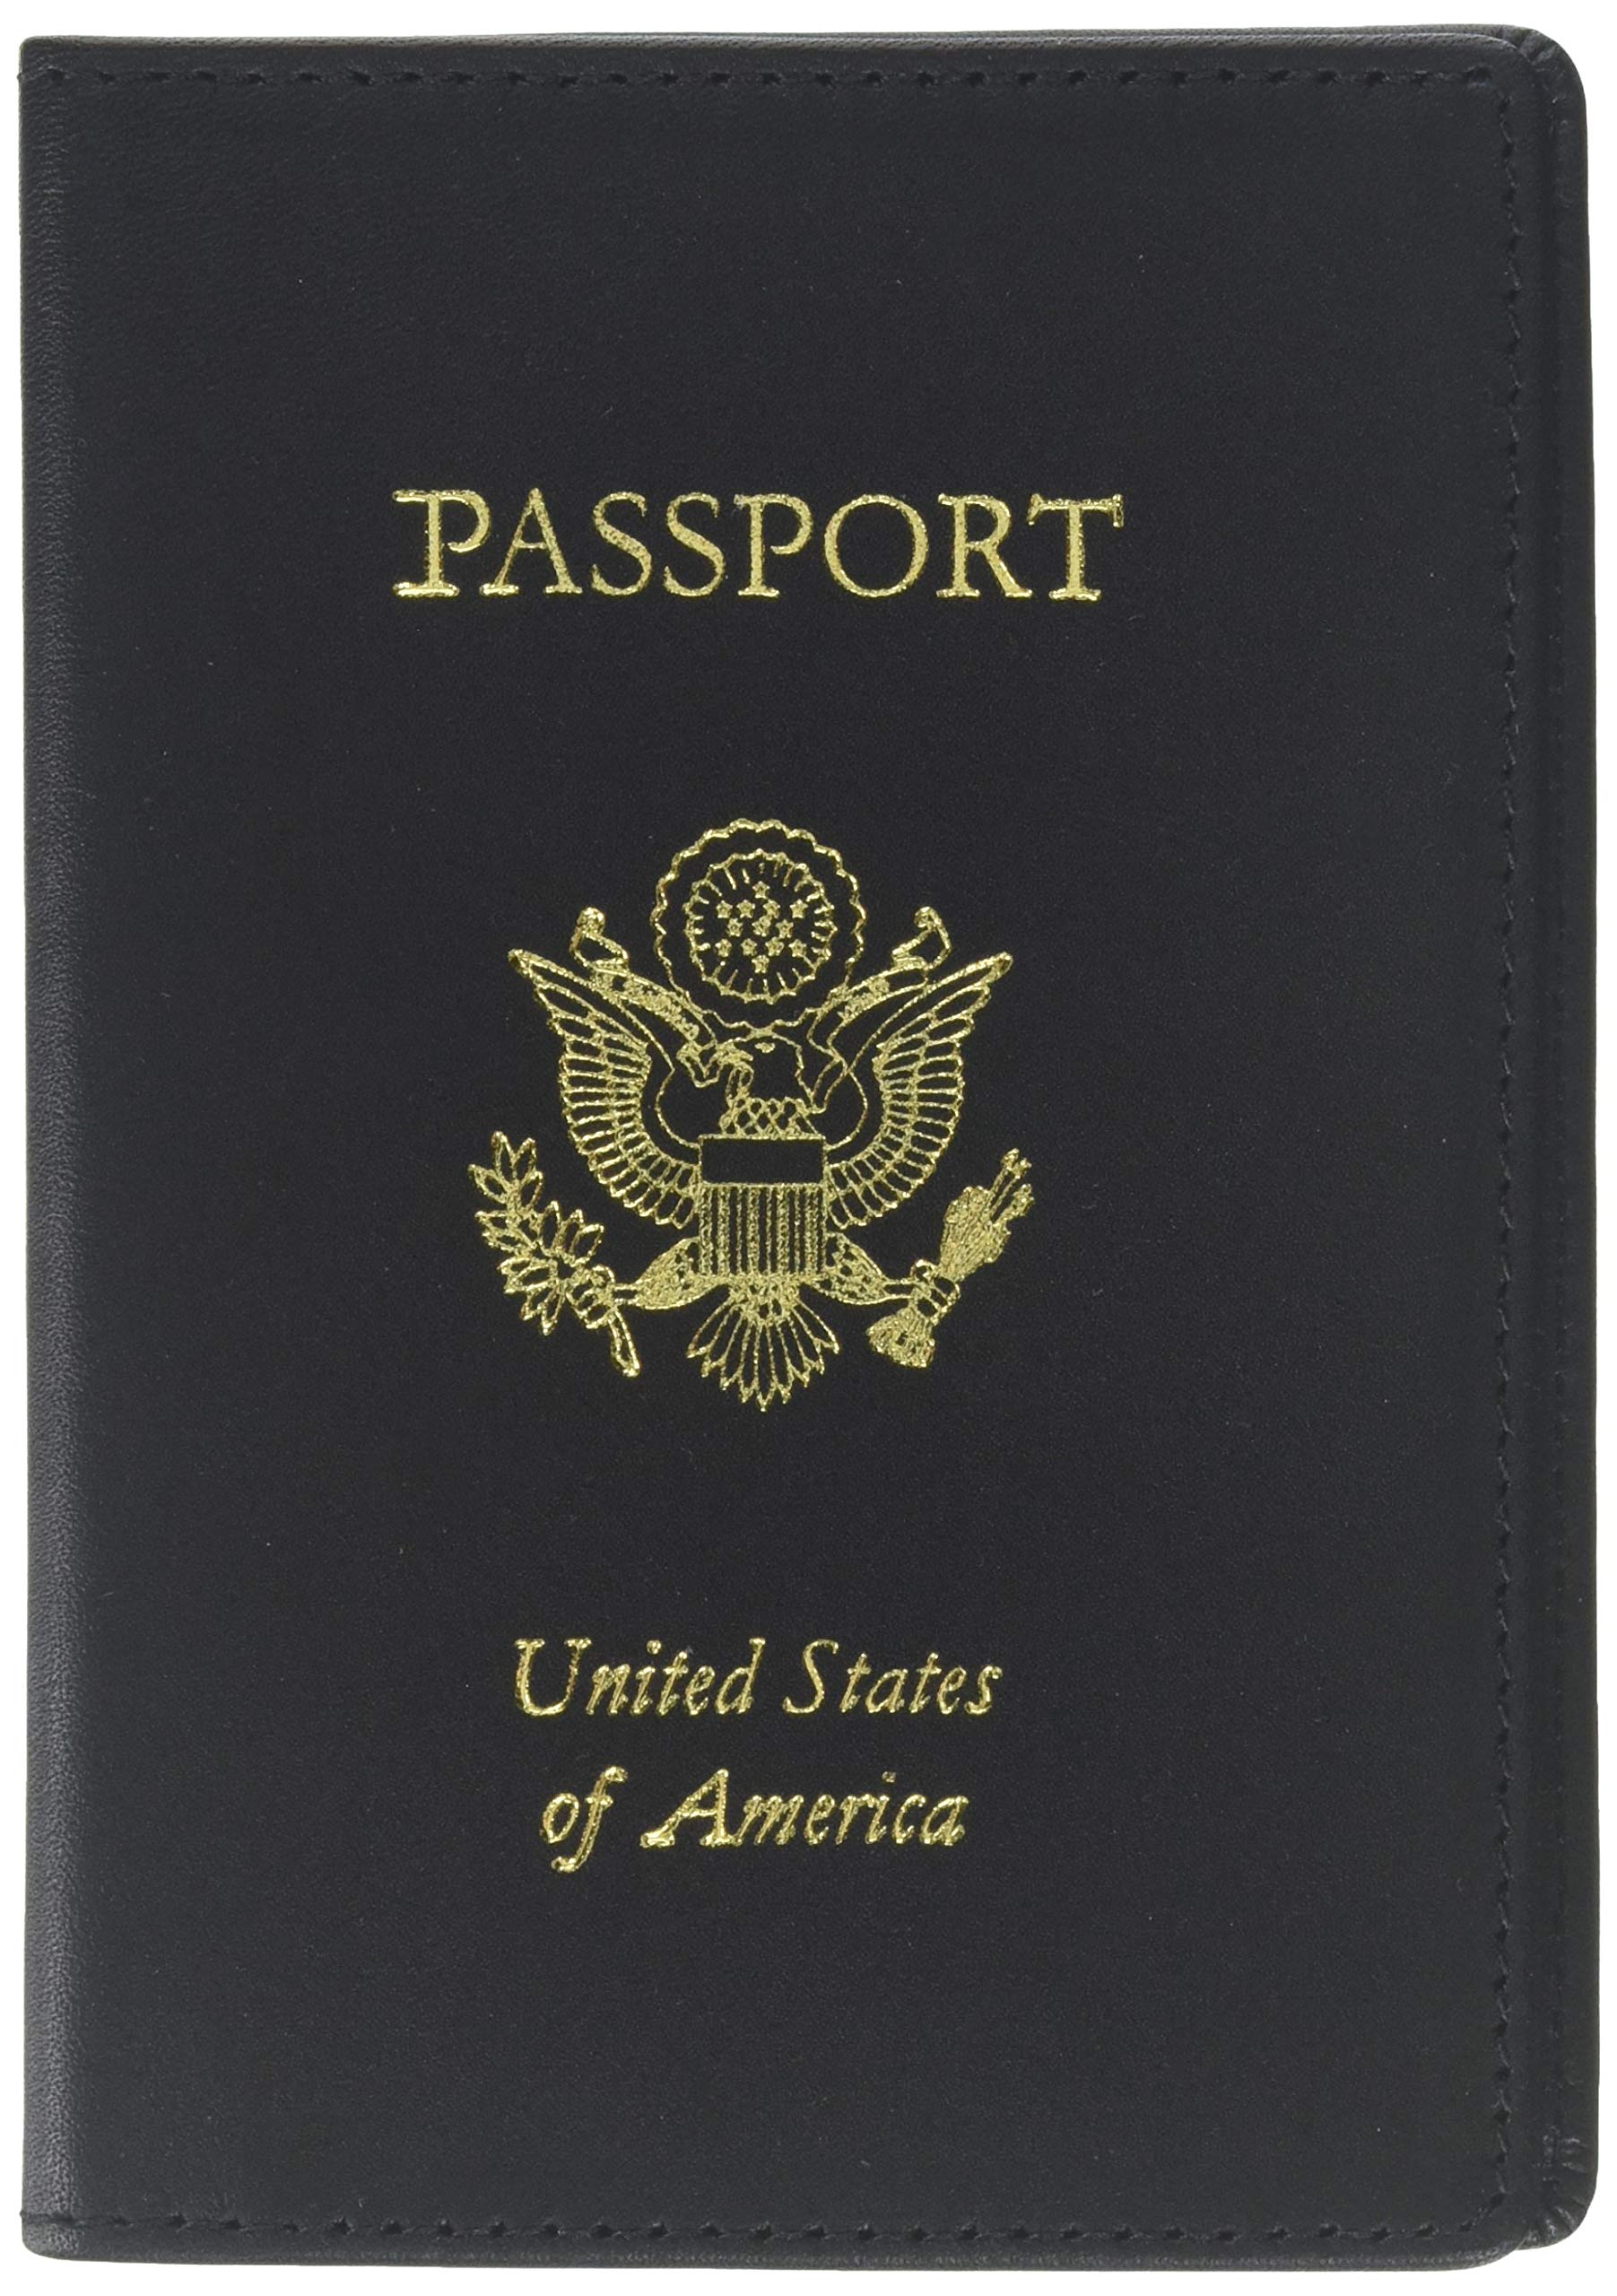 Royce Leather RFID Blocking Passport Travel Document Organizer in Leather, Black 1 by Royce Leather